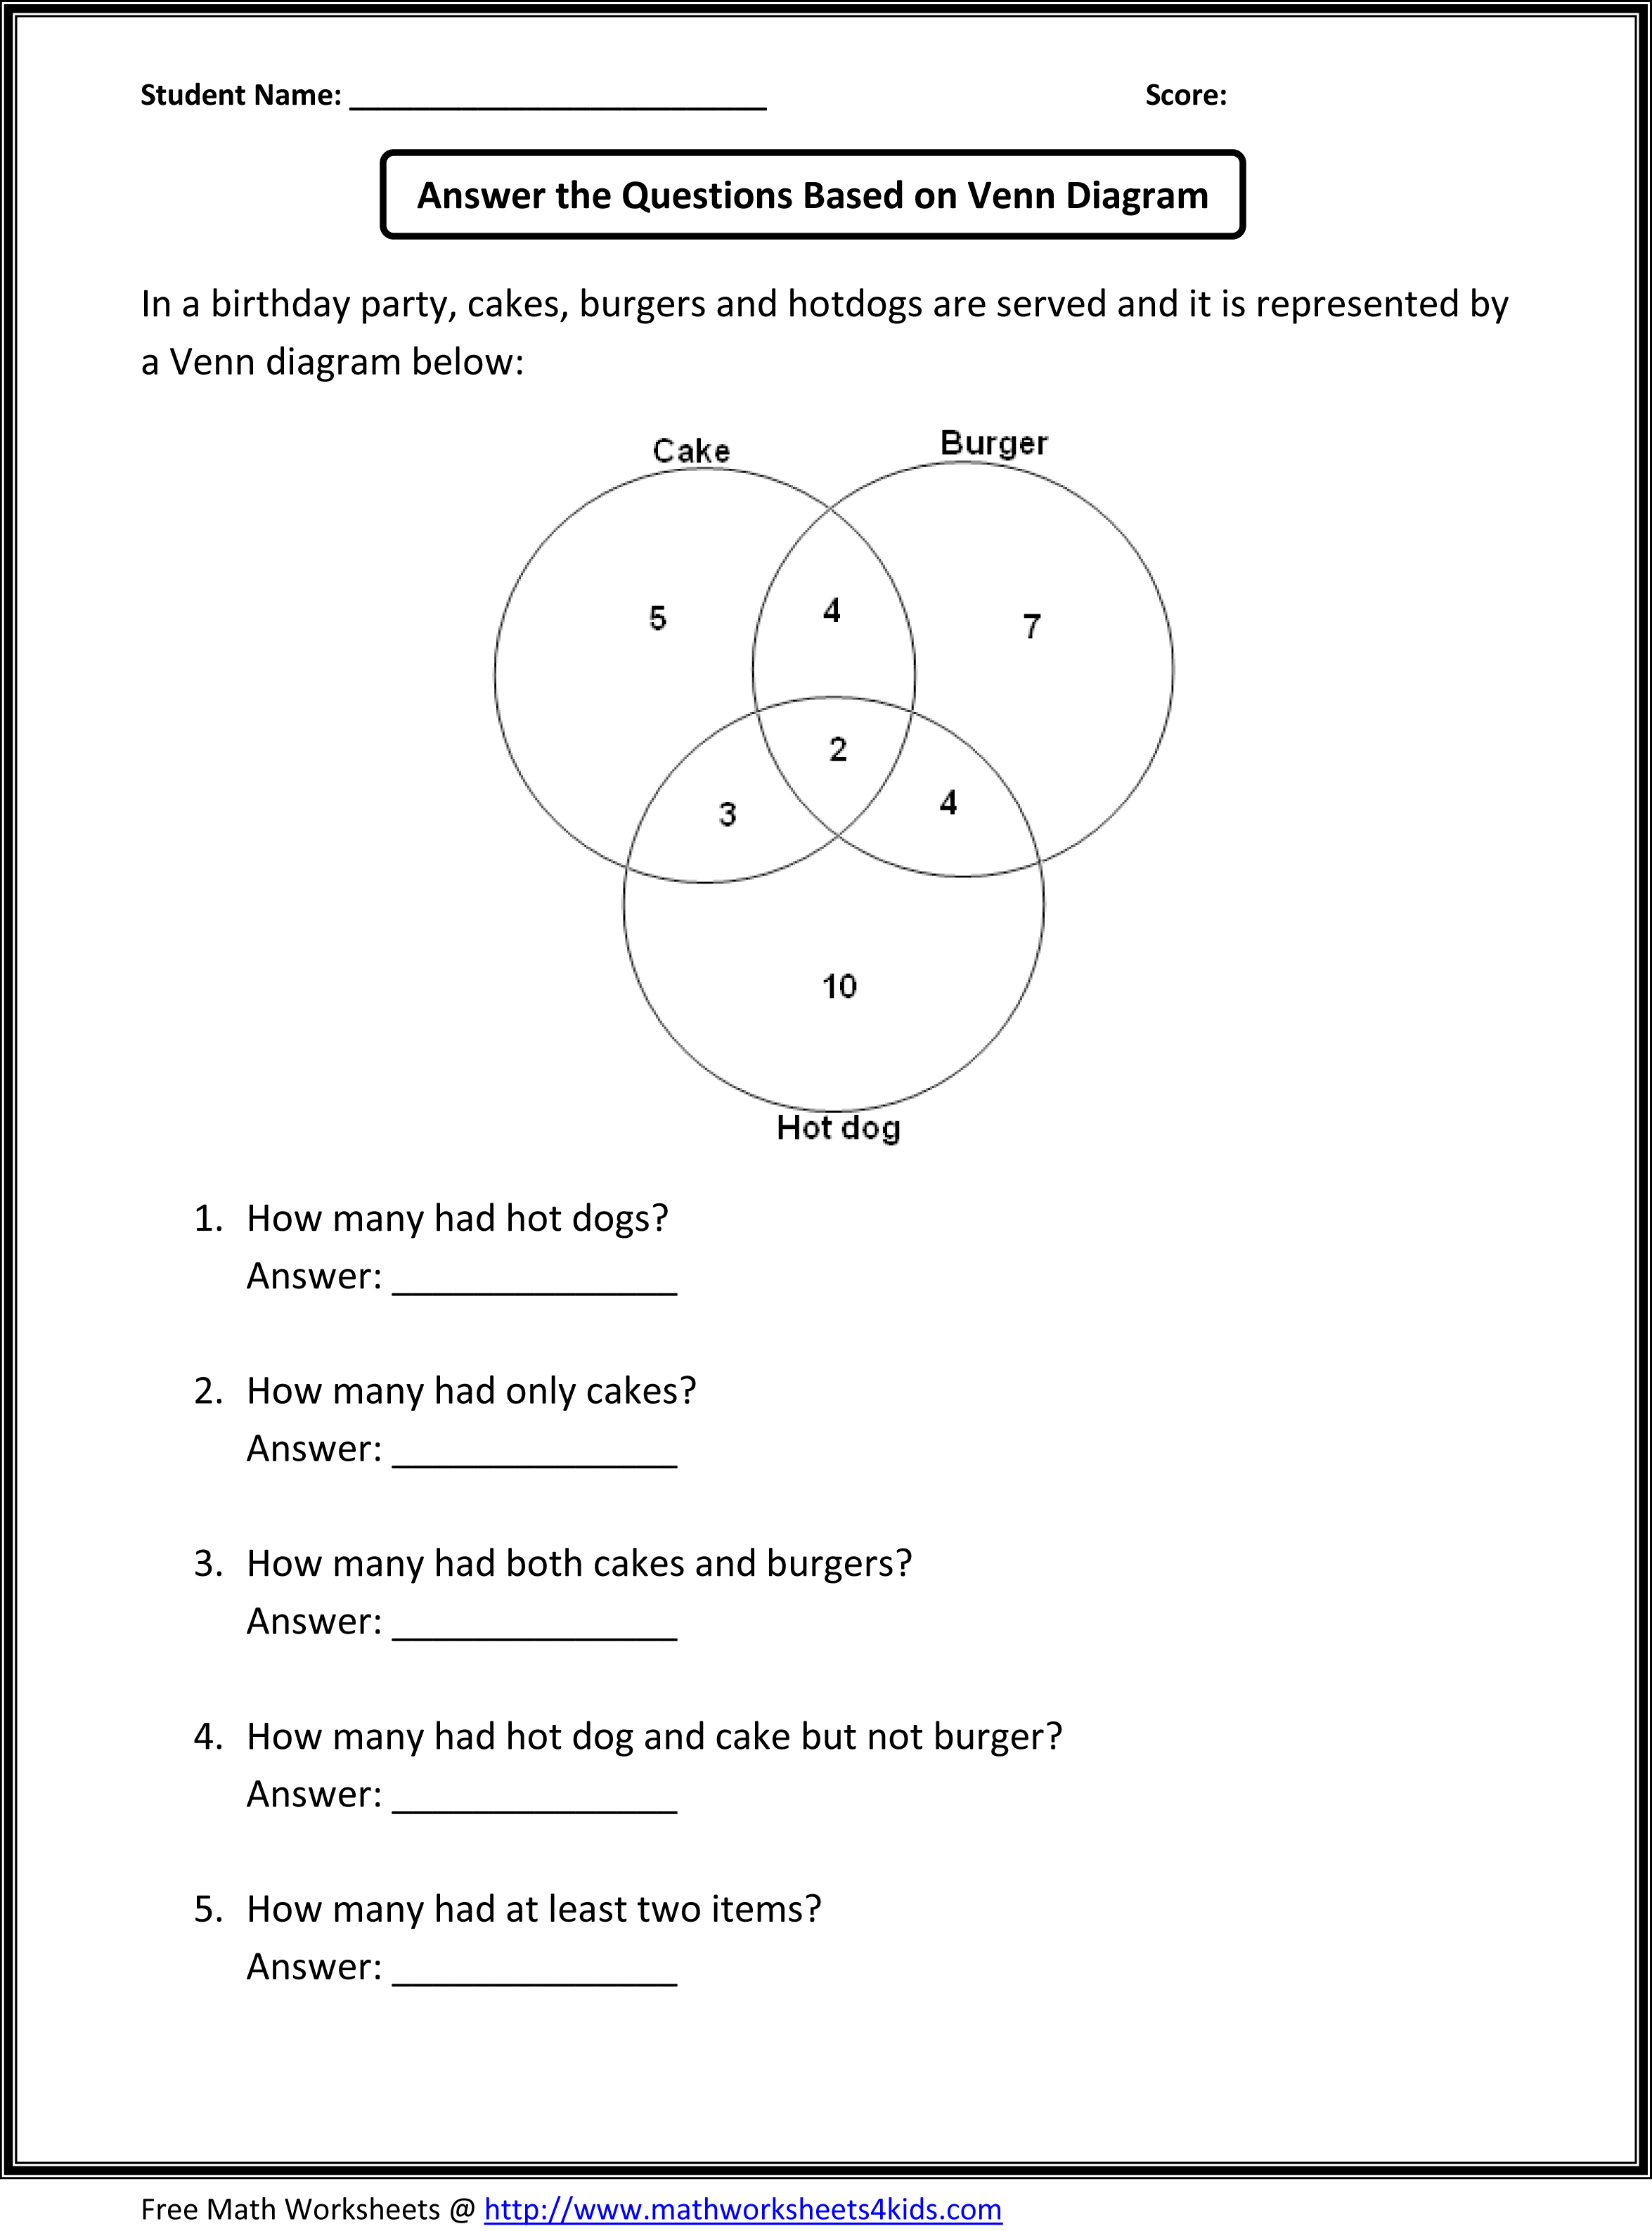 story venn diagram problems nbs-grade 5-6 venn diagram problems to print